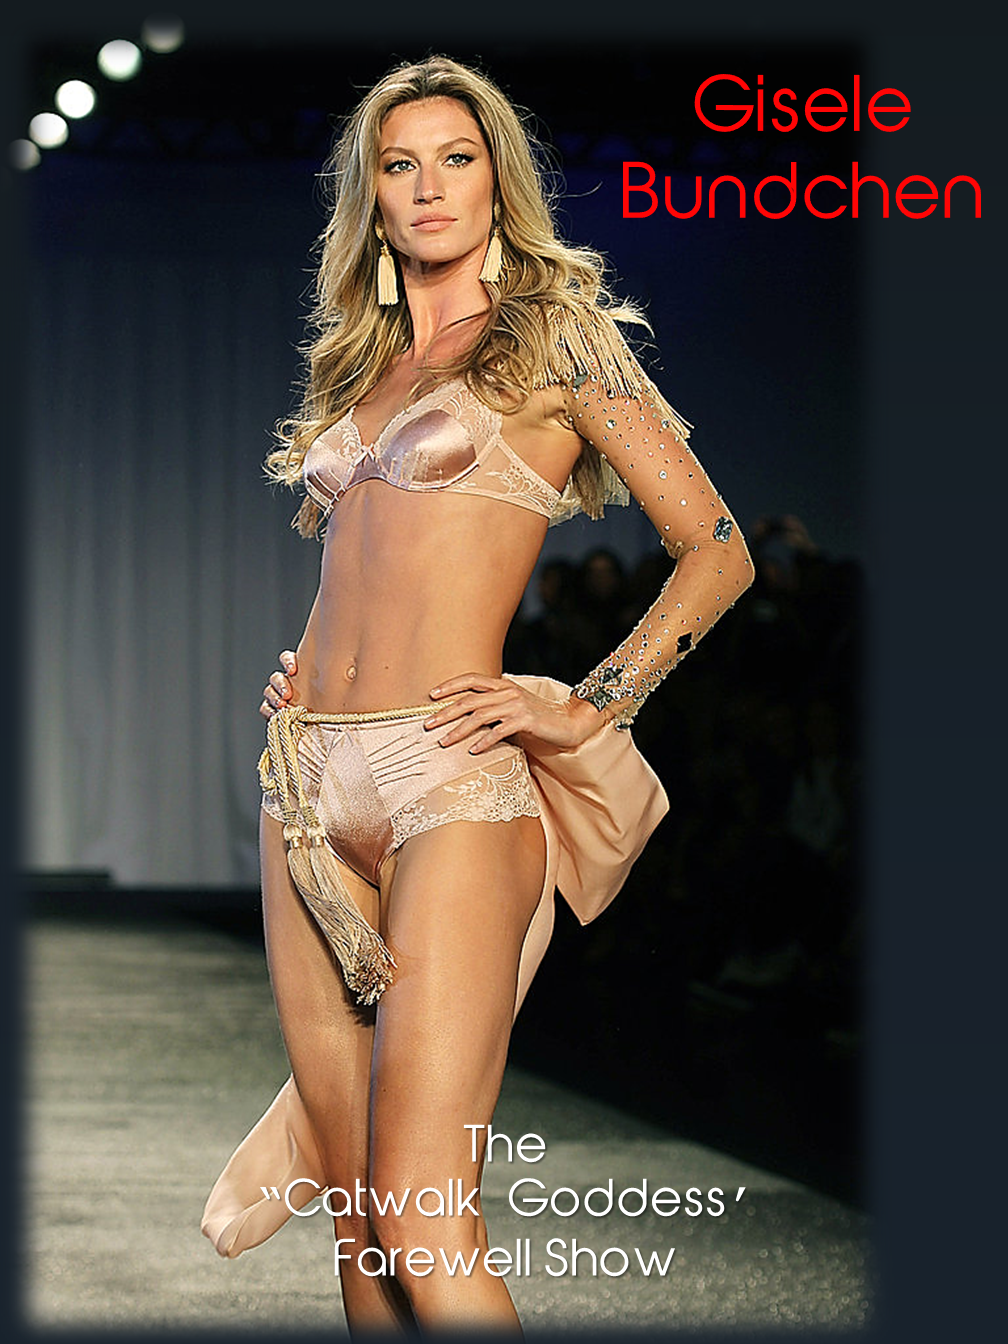 Gisele Bundchen - The last catwalk